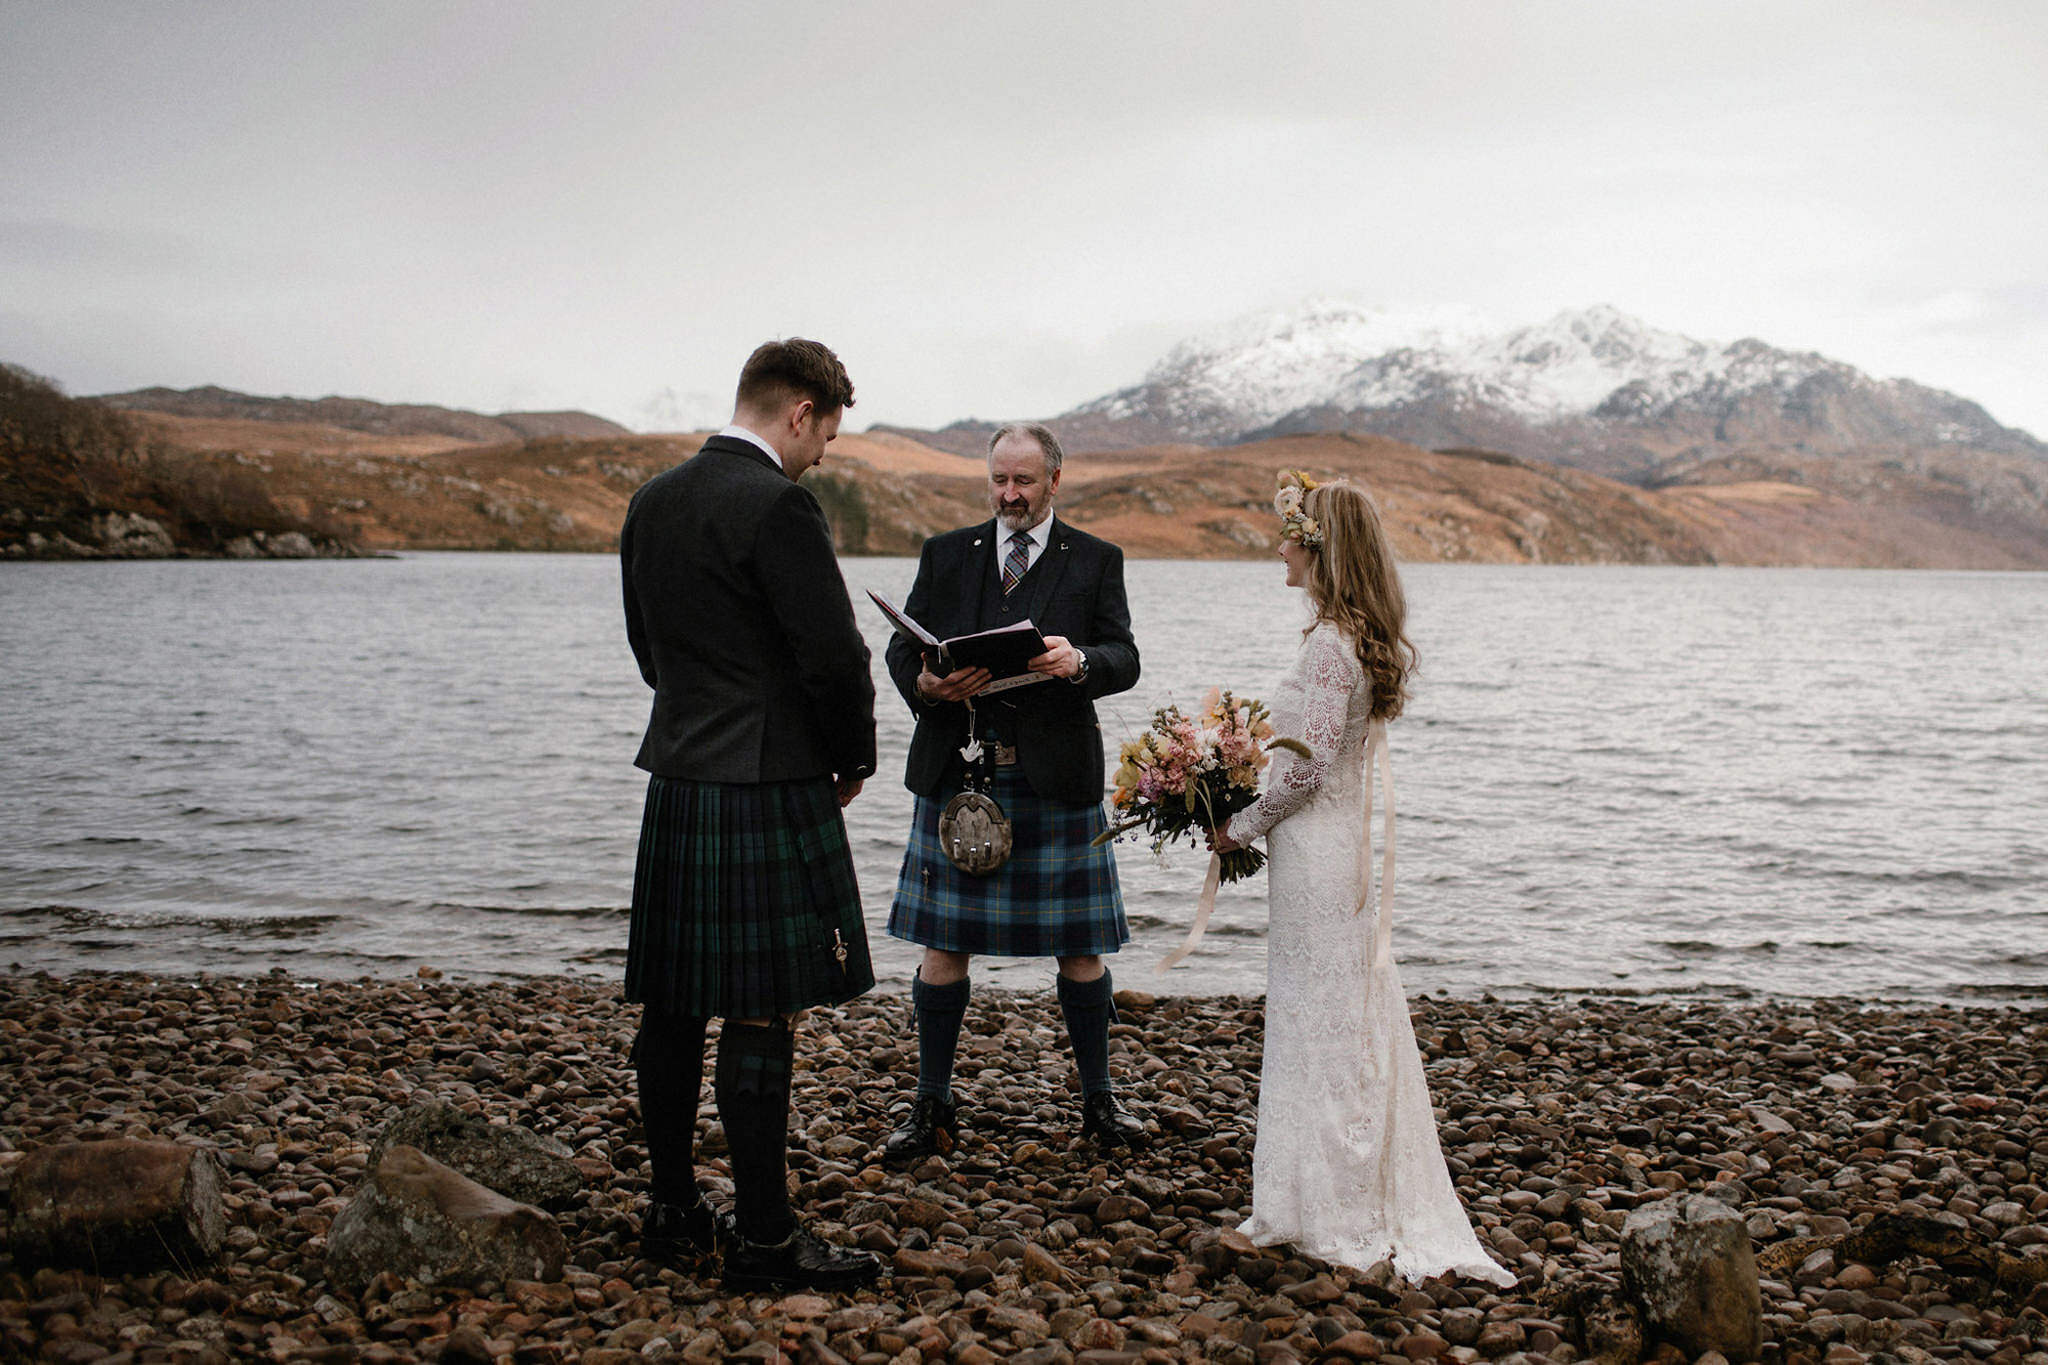 Eloping in Scotland elopement ceremony on the shores of Loch Maree in Scotland